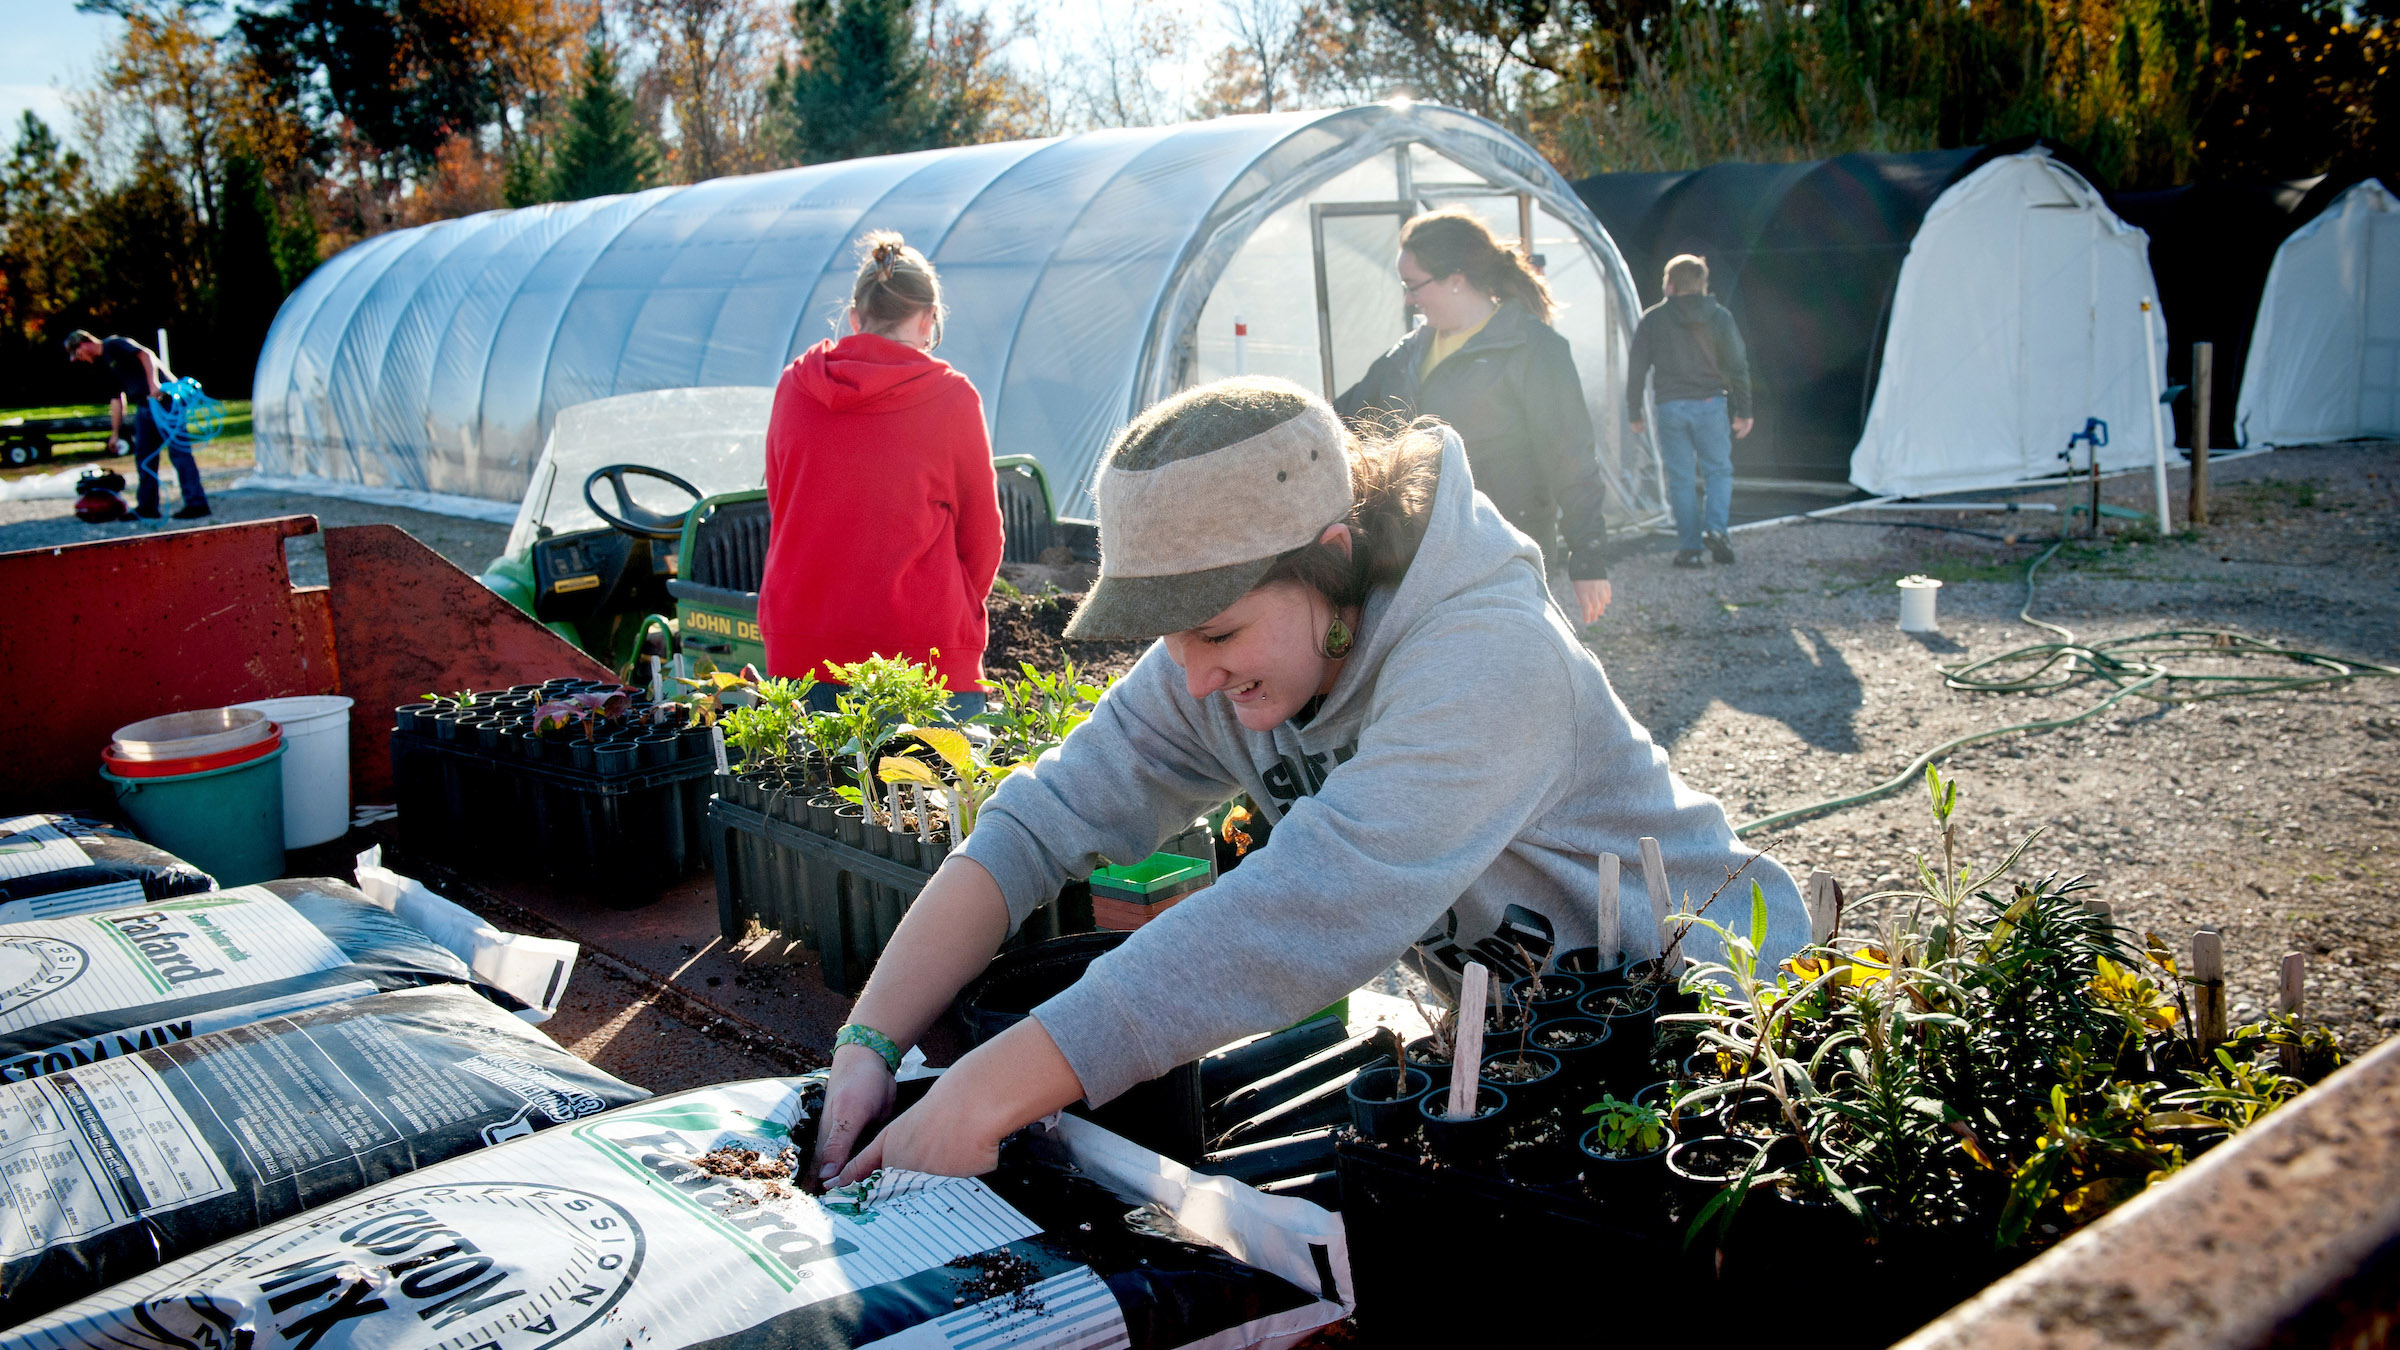 A woman gains hands-on gardening experience potting plants at NC State University's J.C. Raulston Arboretum in Raleigh, N.C.